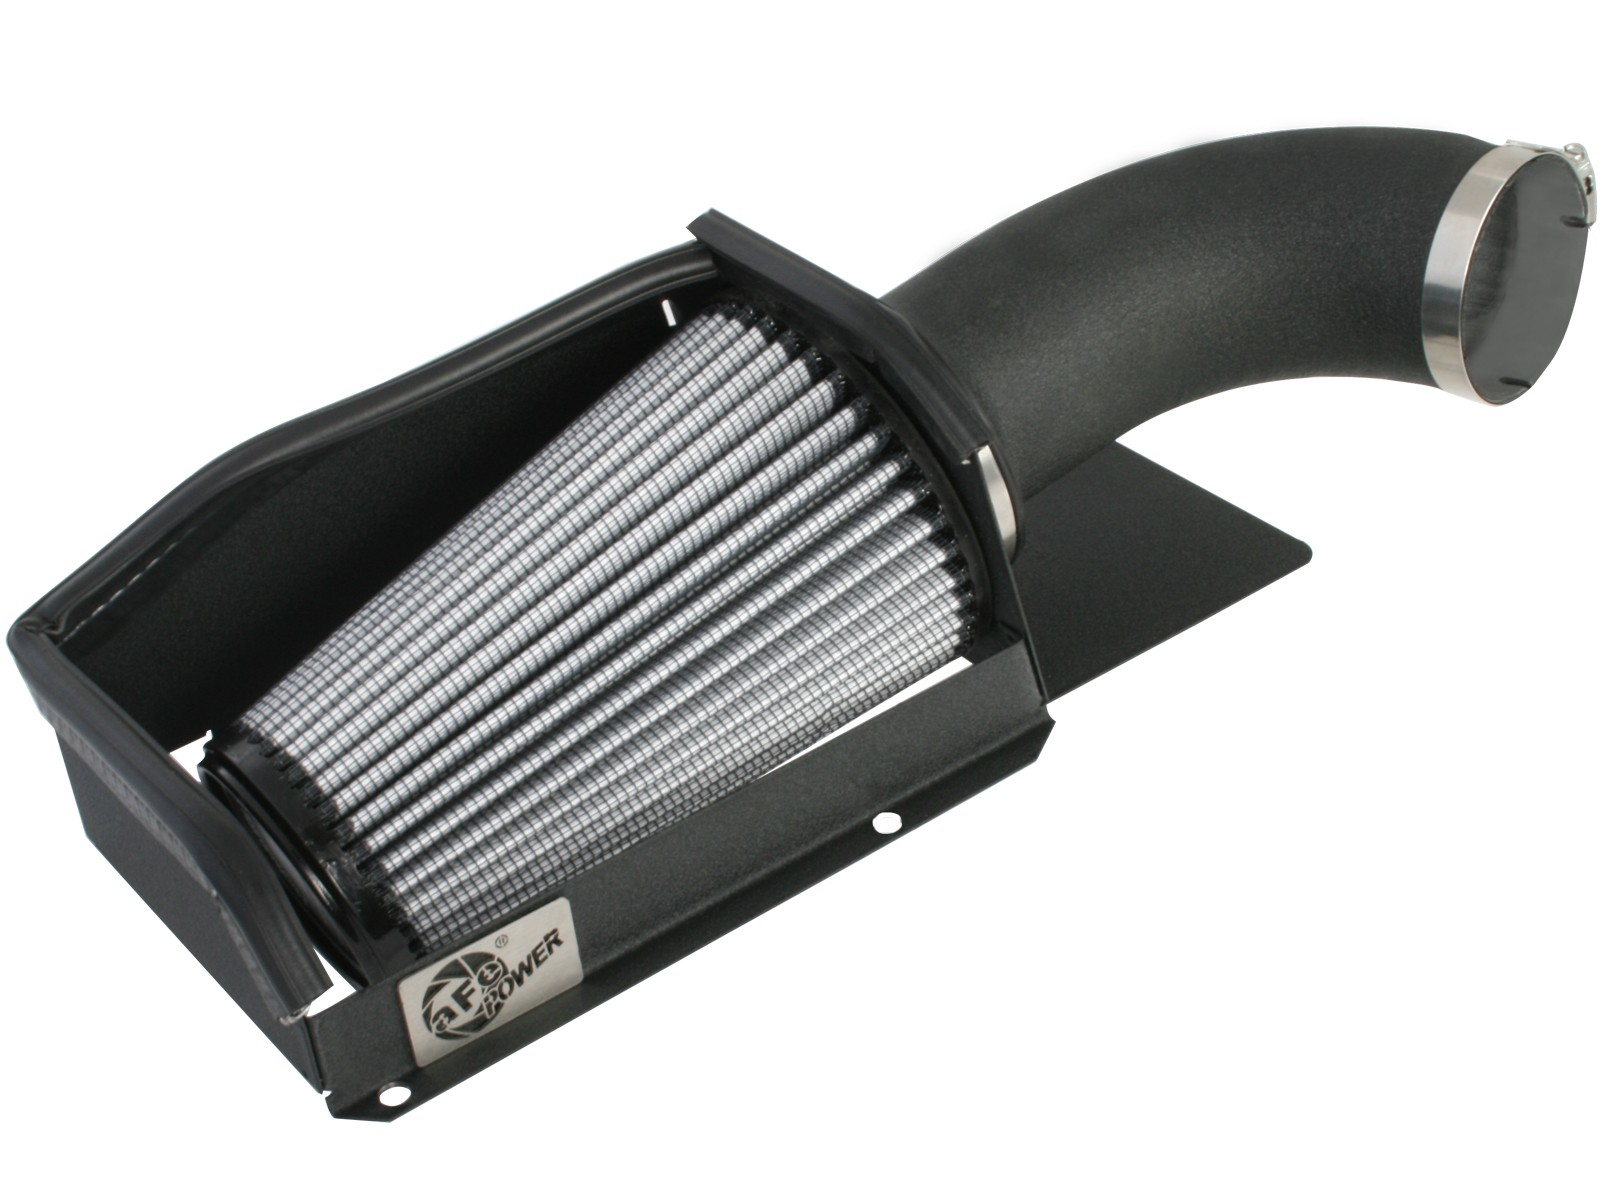 aFe POWER 51-12452 Magnum FORCE Stage-2 Pro DRY S Cold Air Intake System